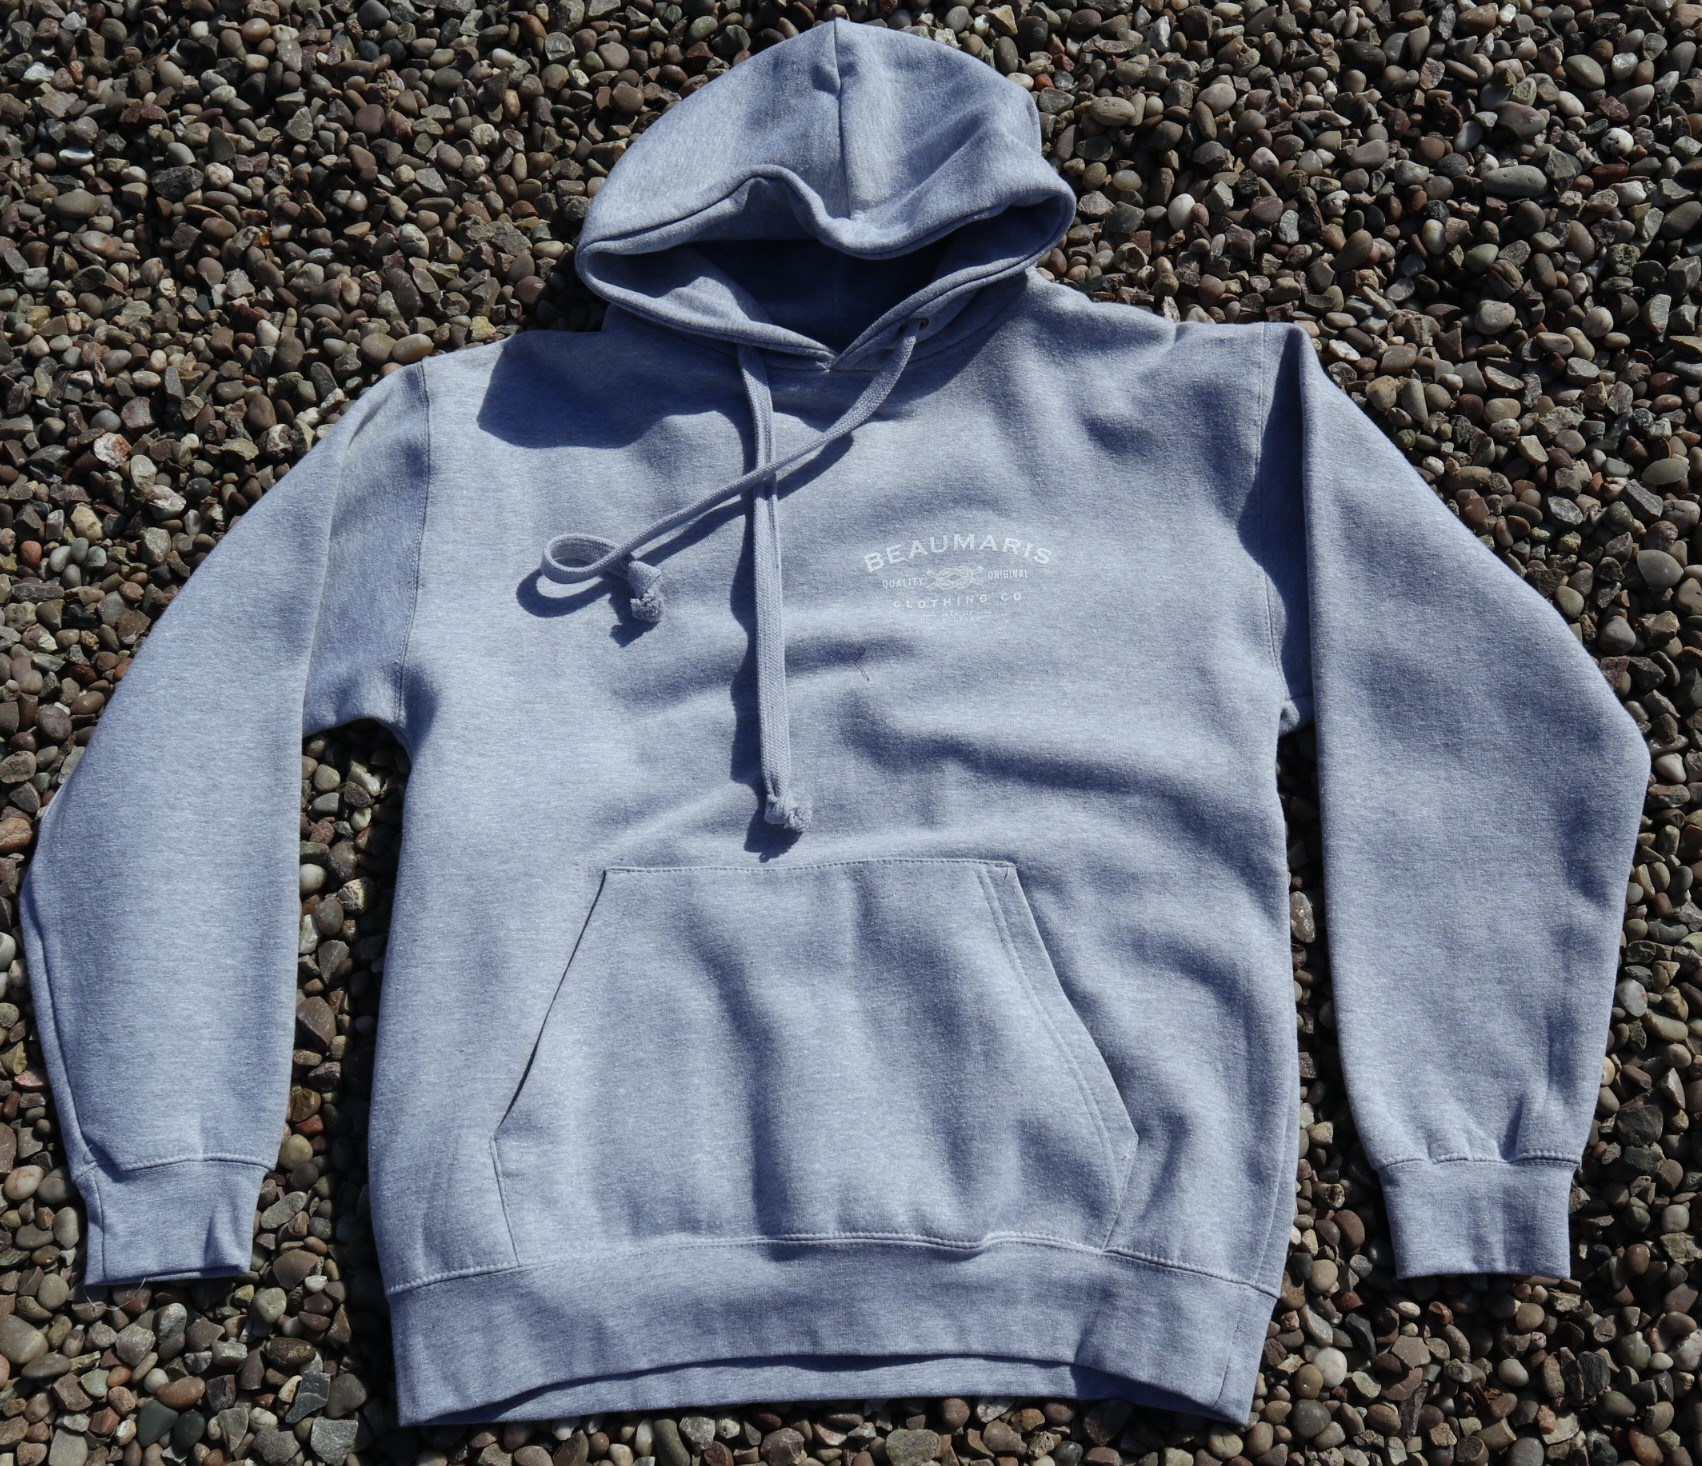 Beaumaris clothing company hoody grey marl